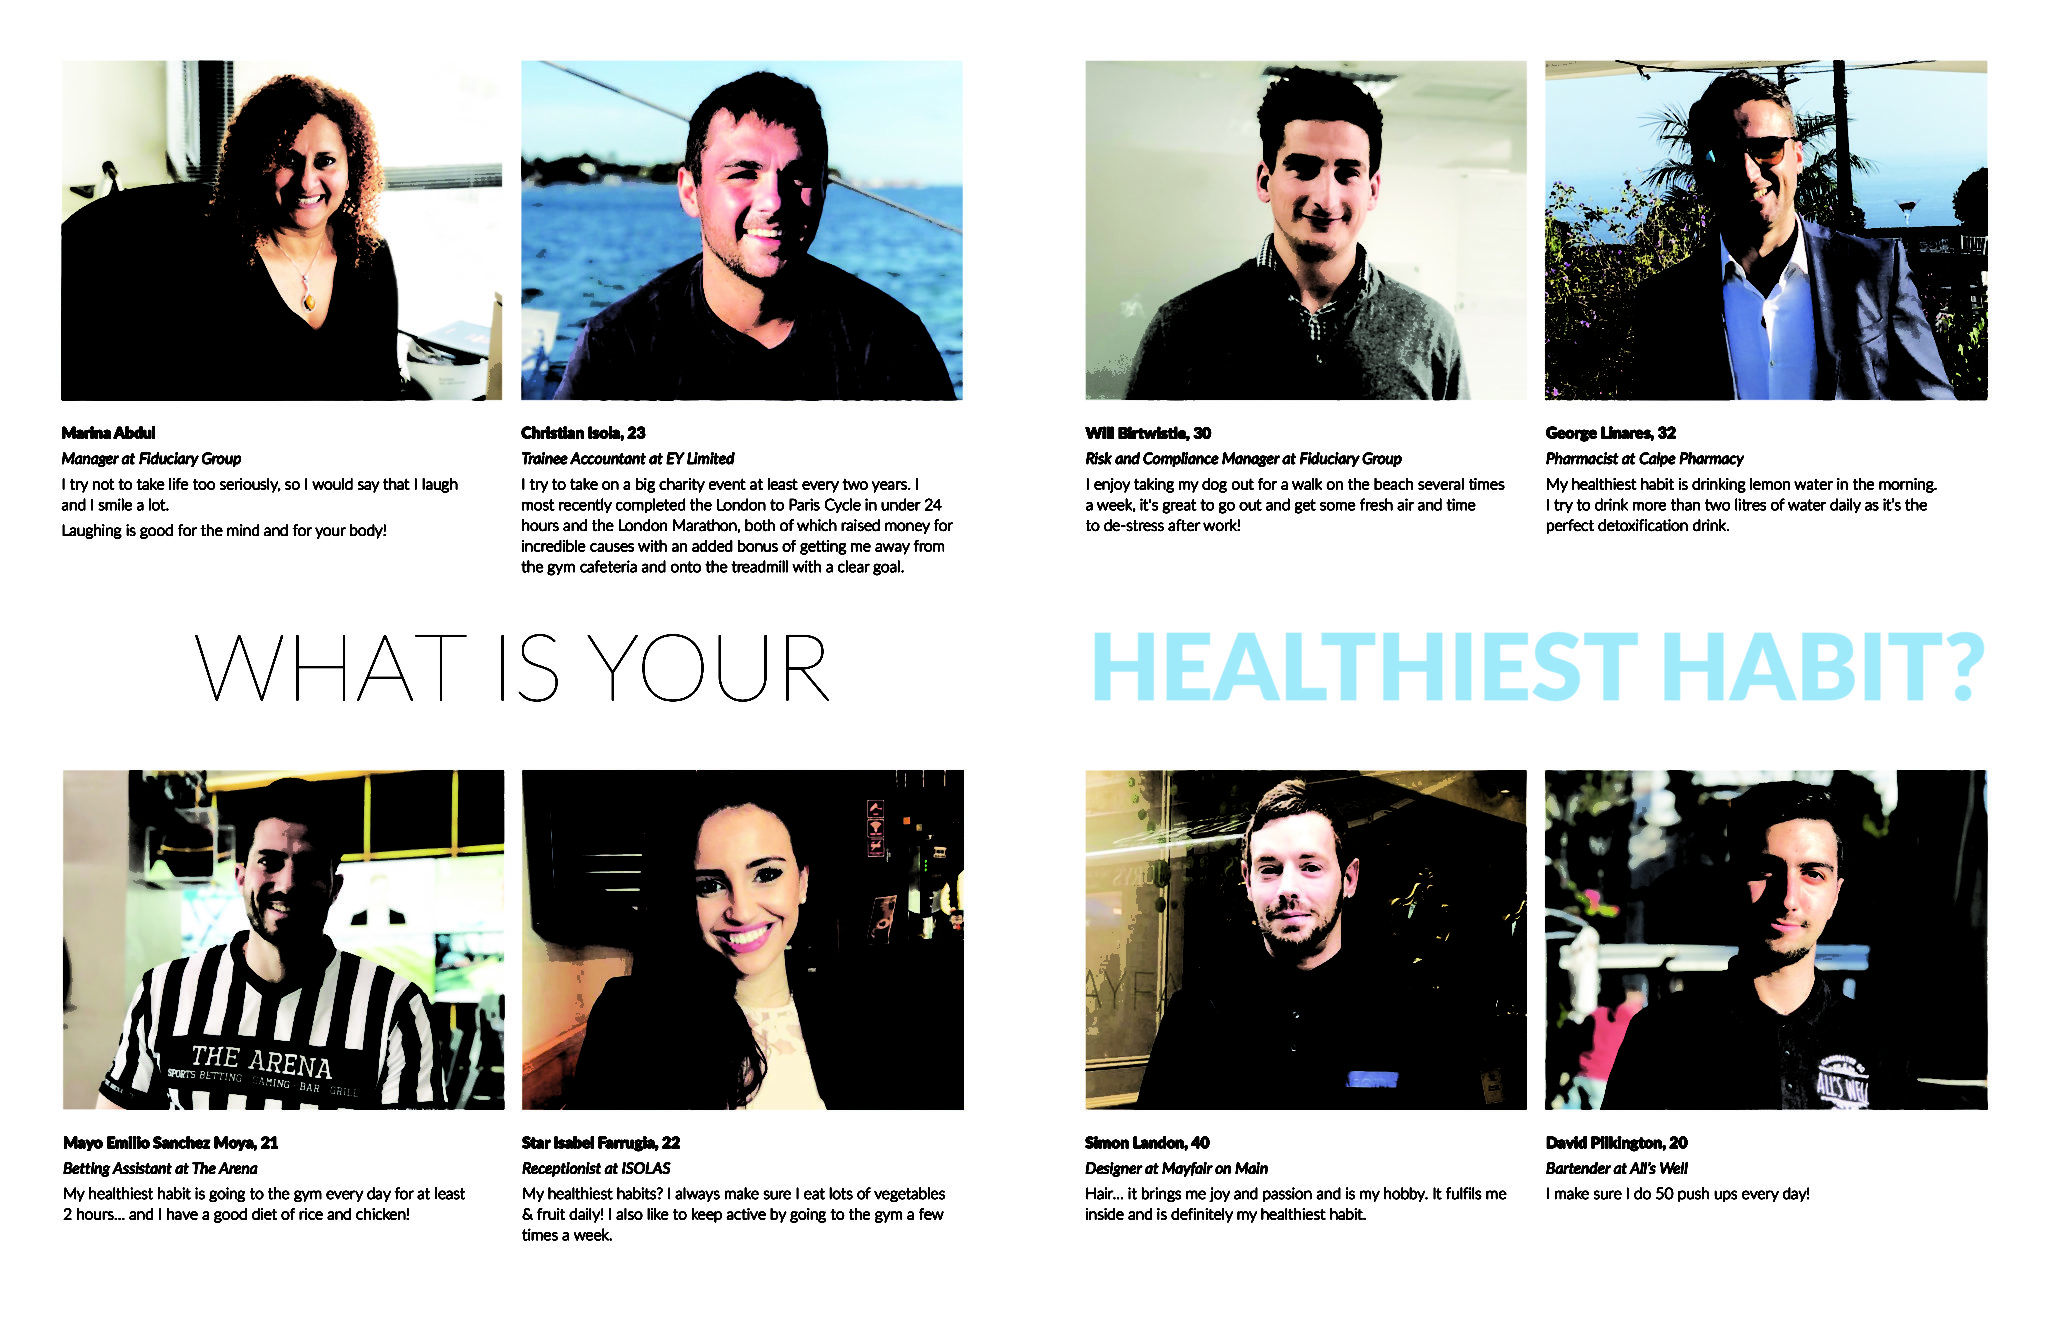 hello there – WHAT IS YOUR HEALTHIEST HABIT? | The Gibraltar